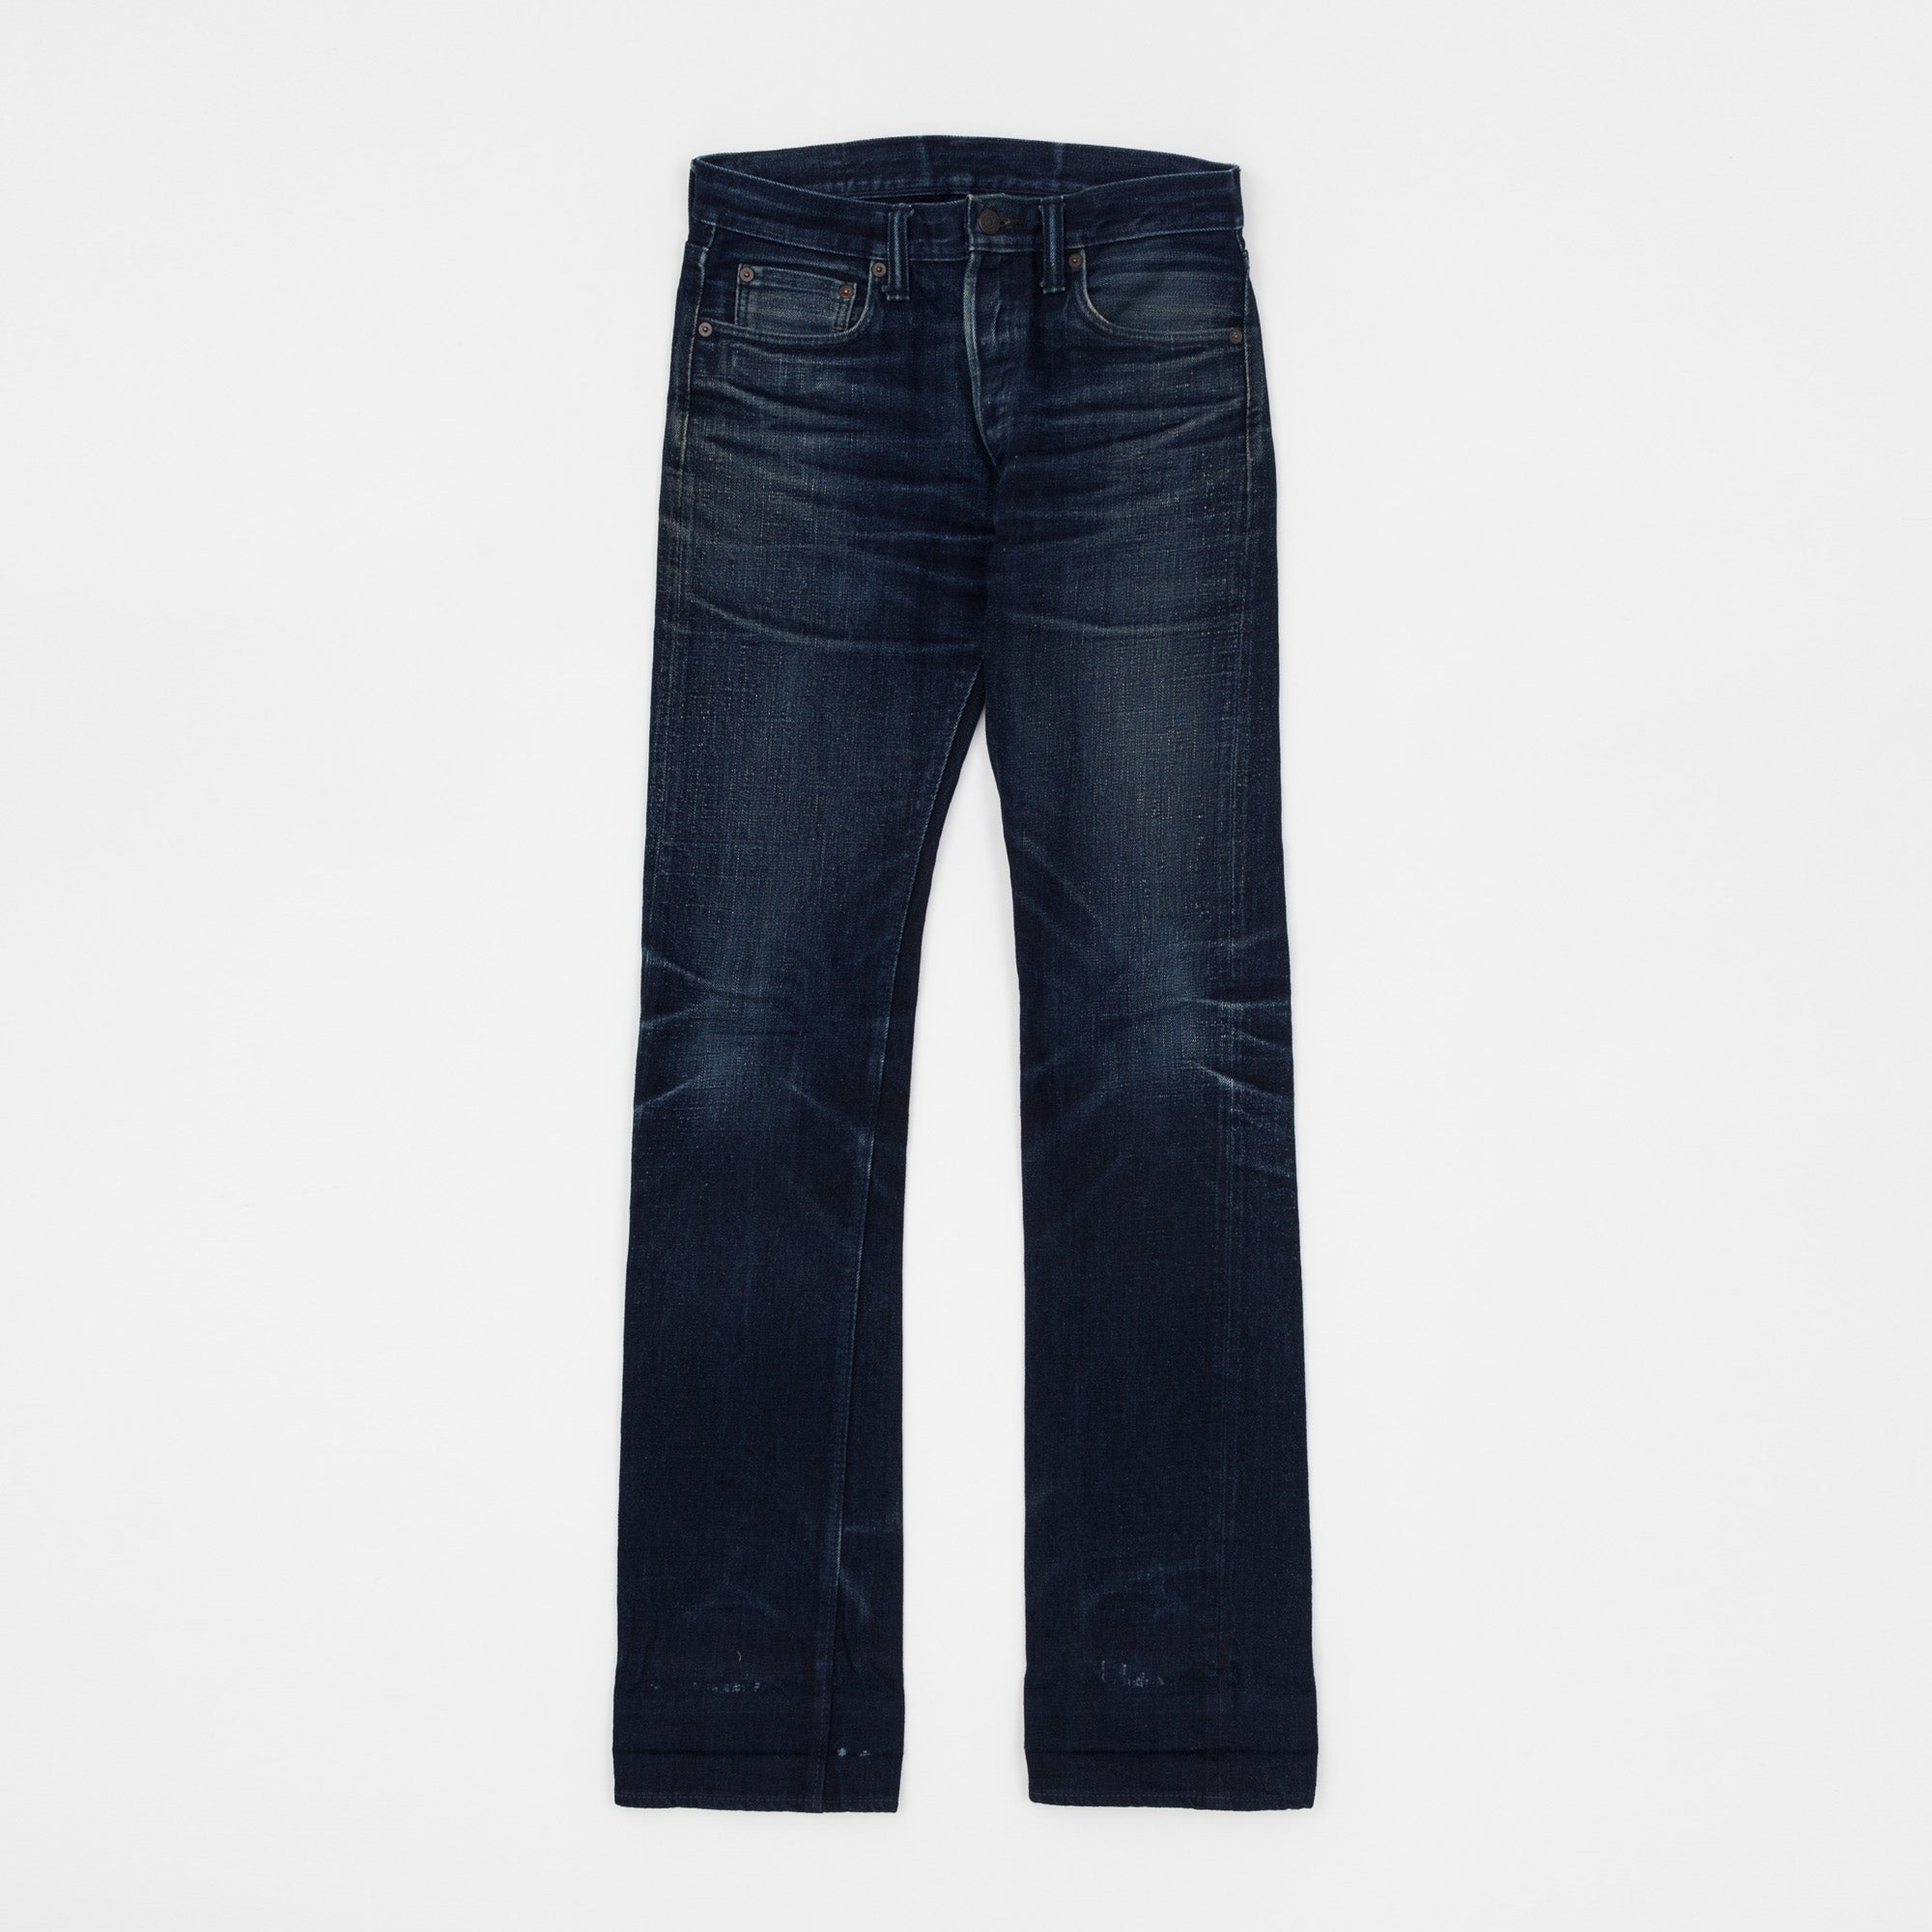 Pure Blue Japan X007 Selvedge Denim